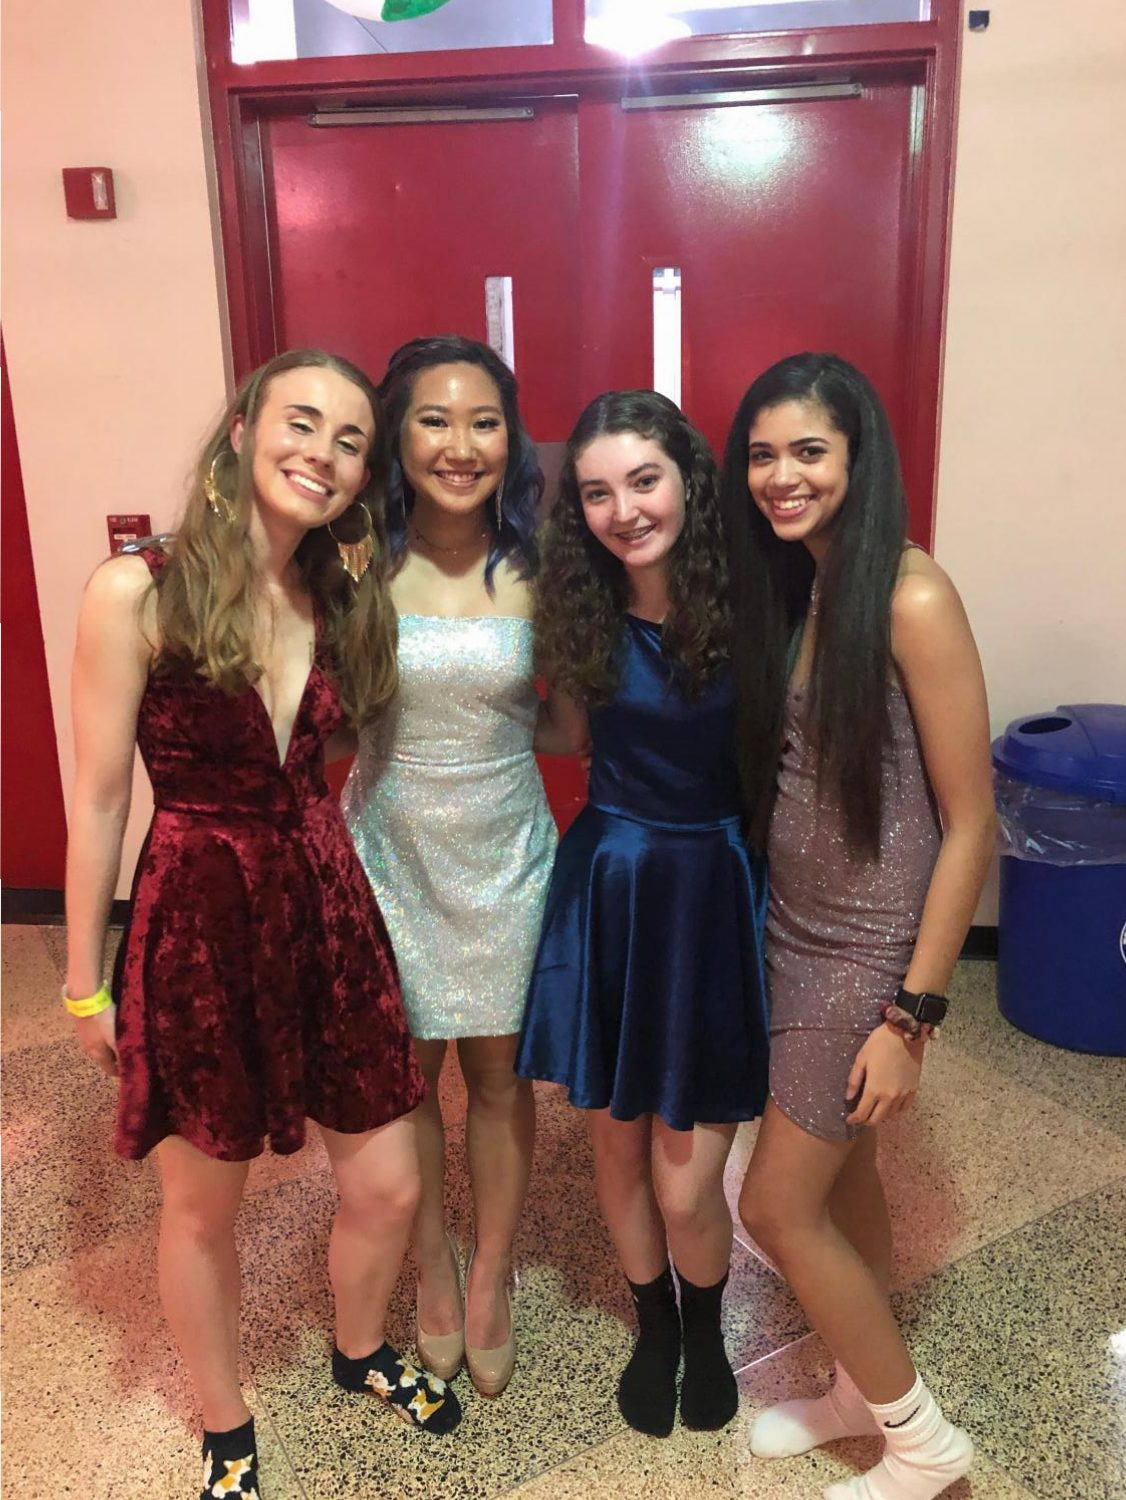 Attending the Homecoming Dance, Sophia Carr, Seryna Chung, Kiera Dowdell, and Taylor Pickering take a break from dancing to mingle in the lobby.